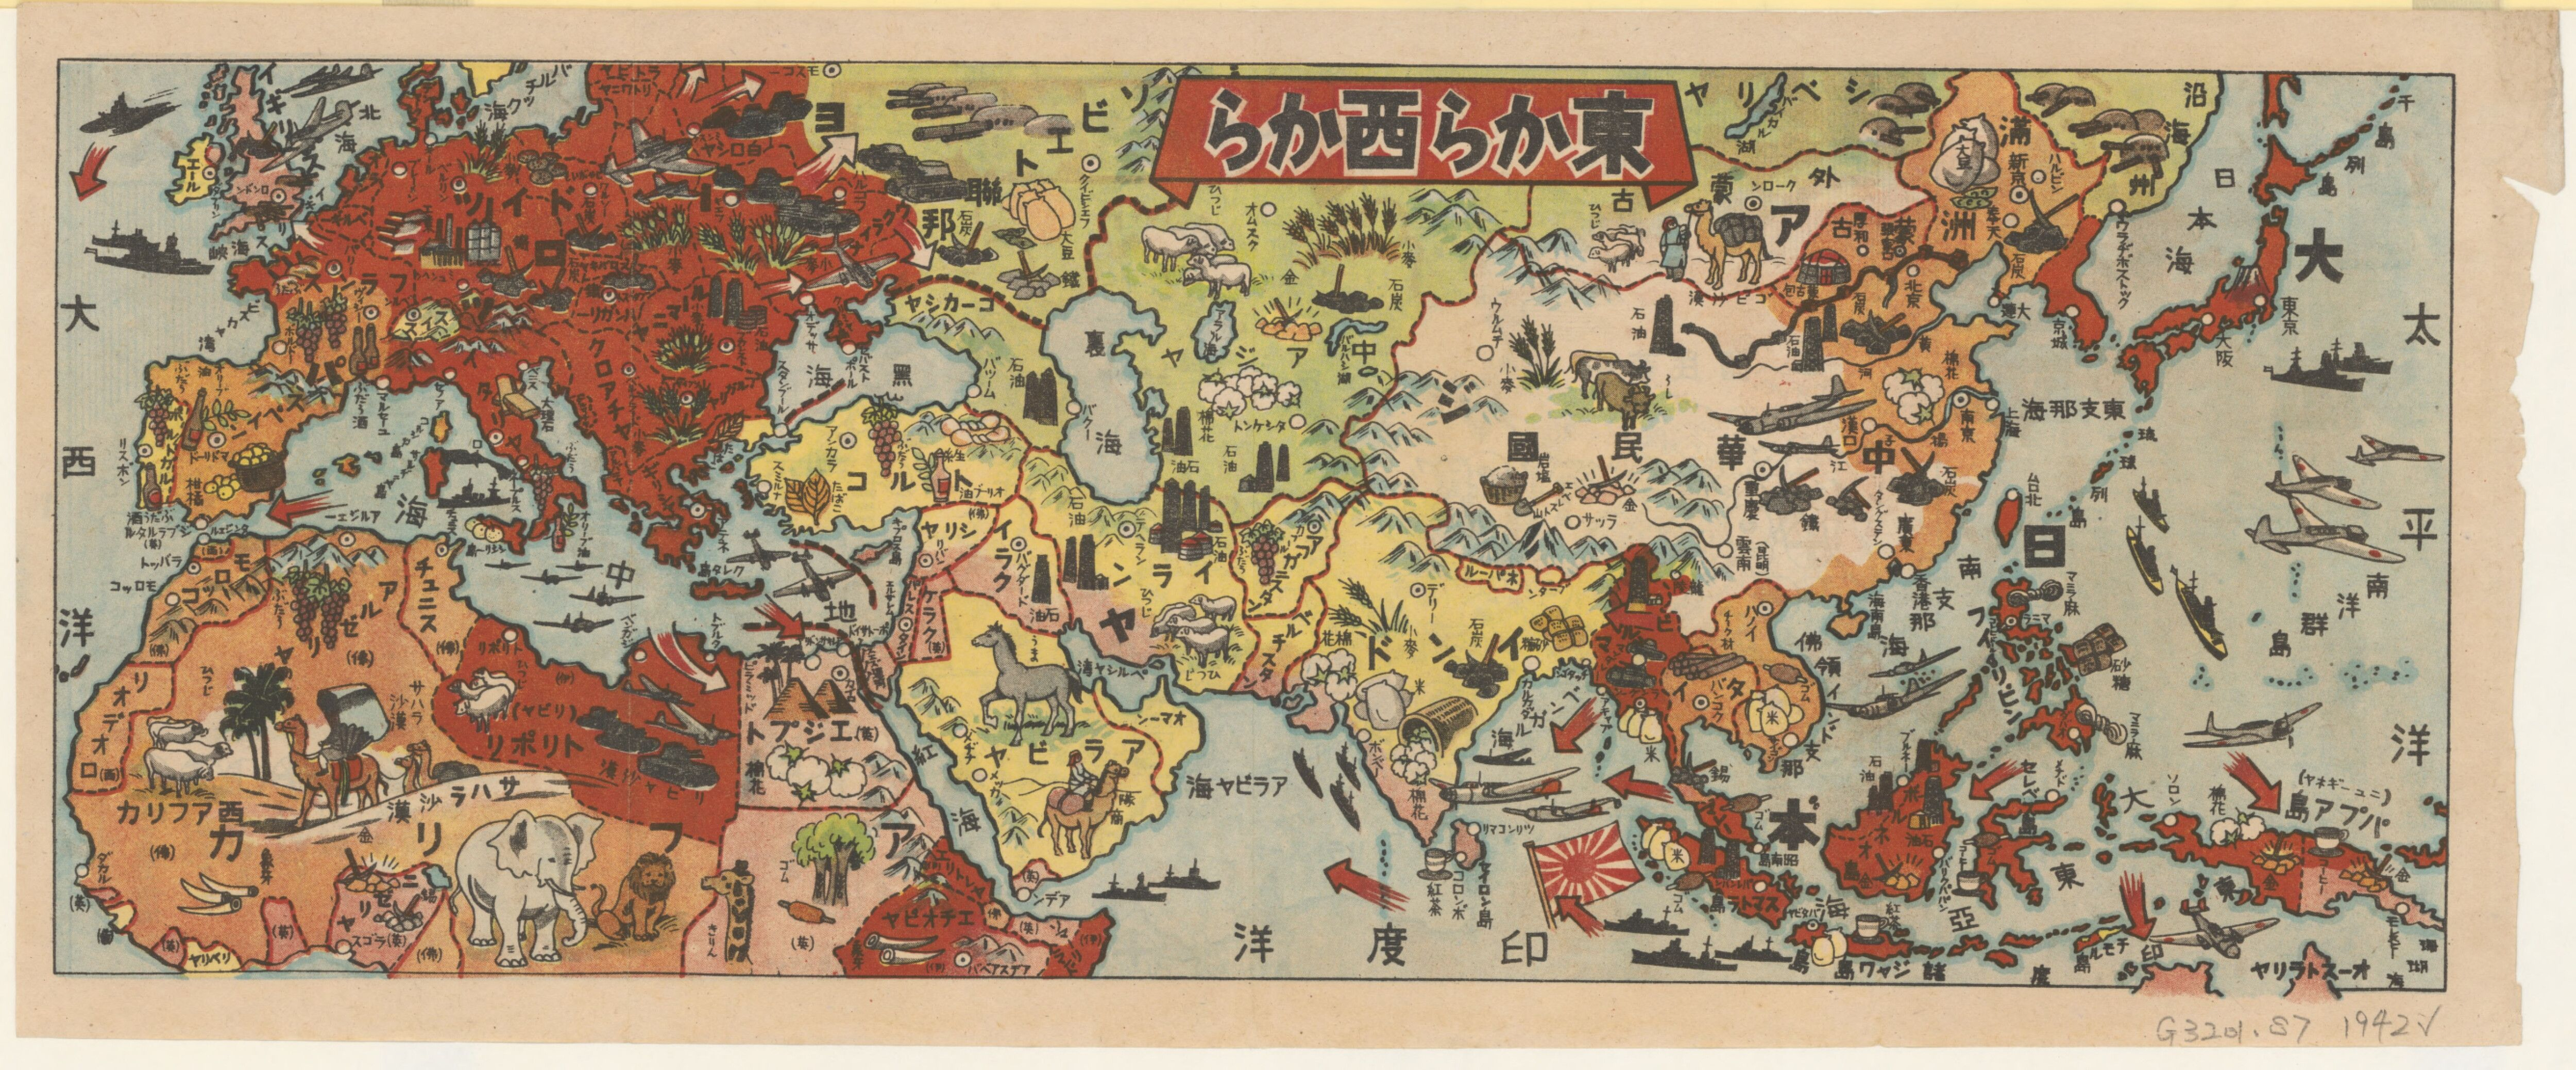 Japanese world war ii pictorial map of europe asia and northern japanese world war ii pictorial map of europe asia and northern africa 1942 gumiabroncs Image collections